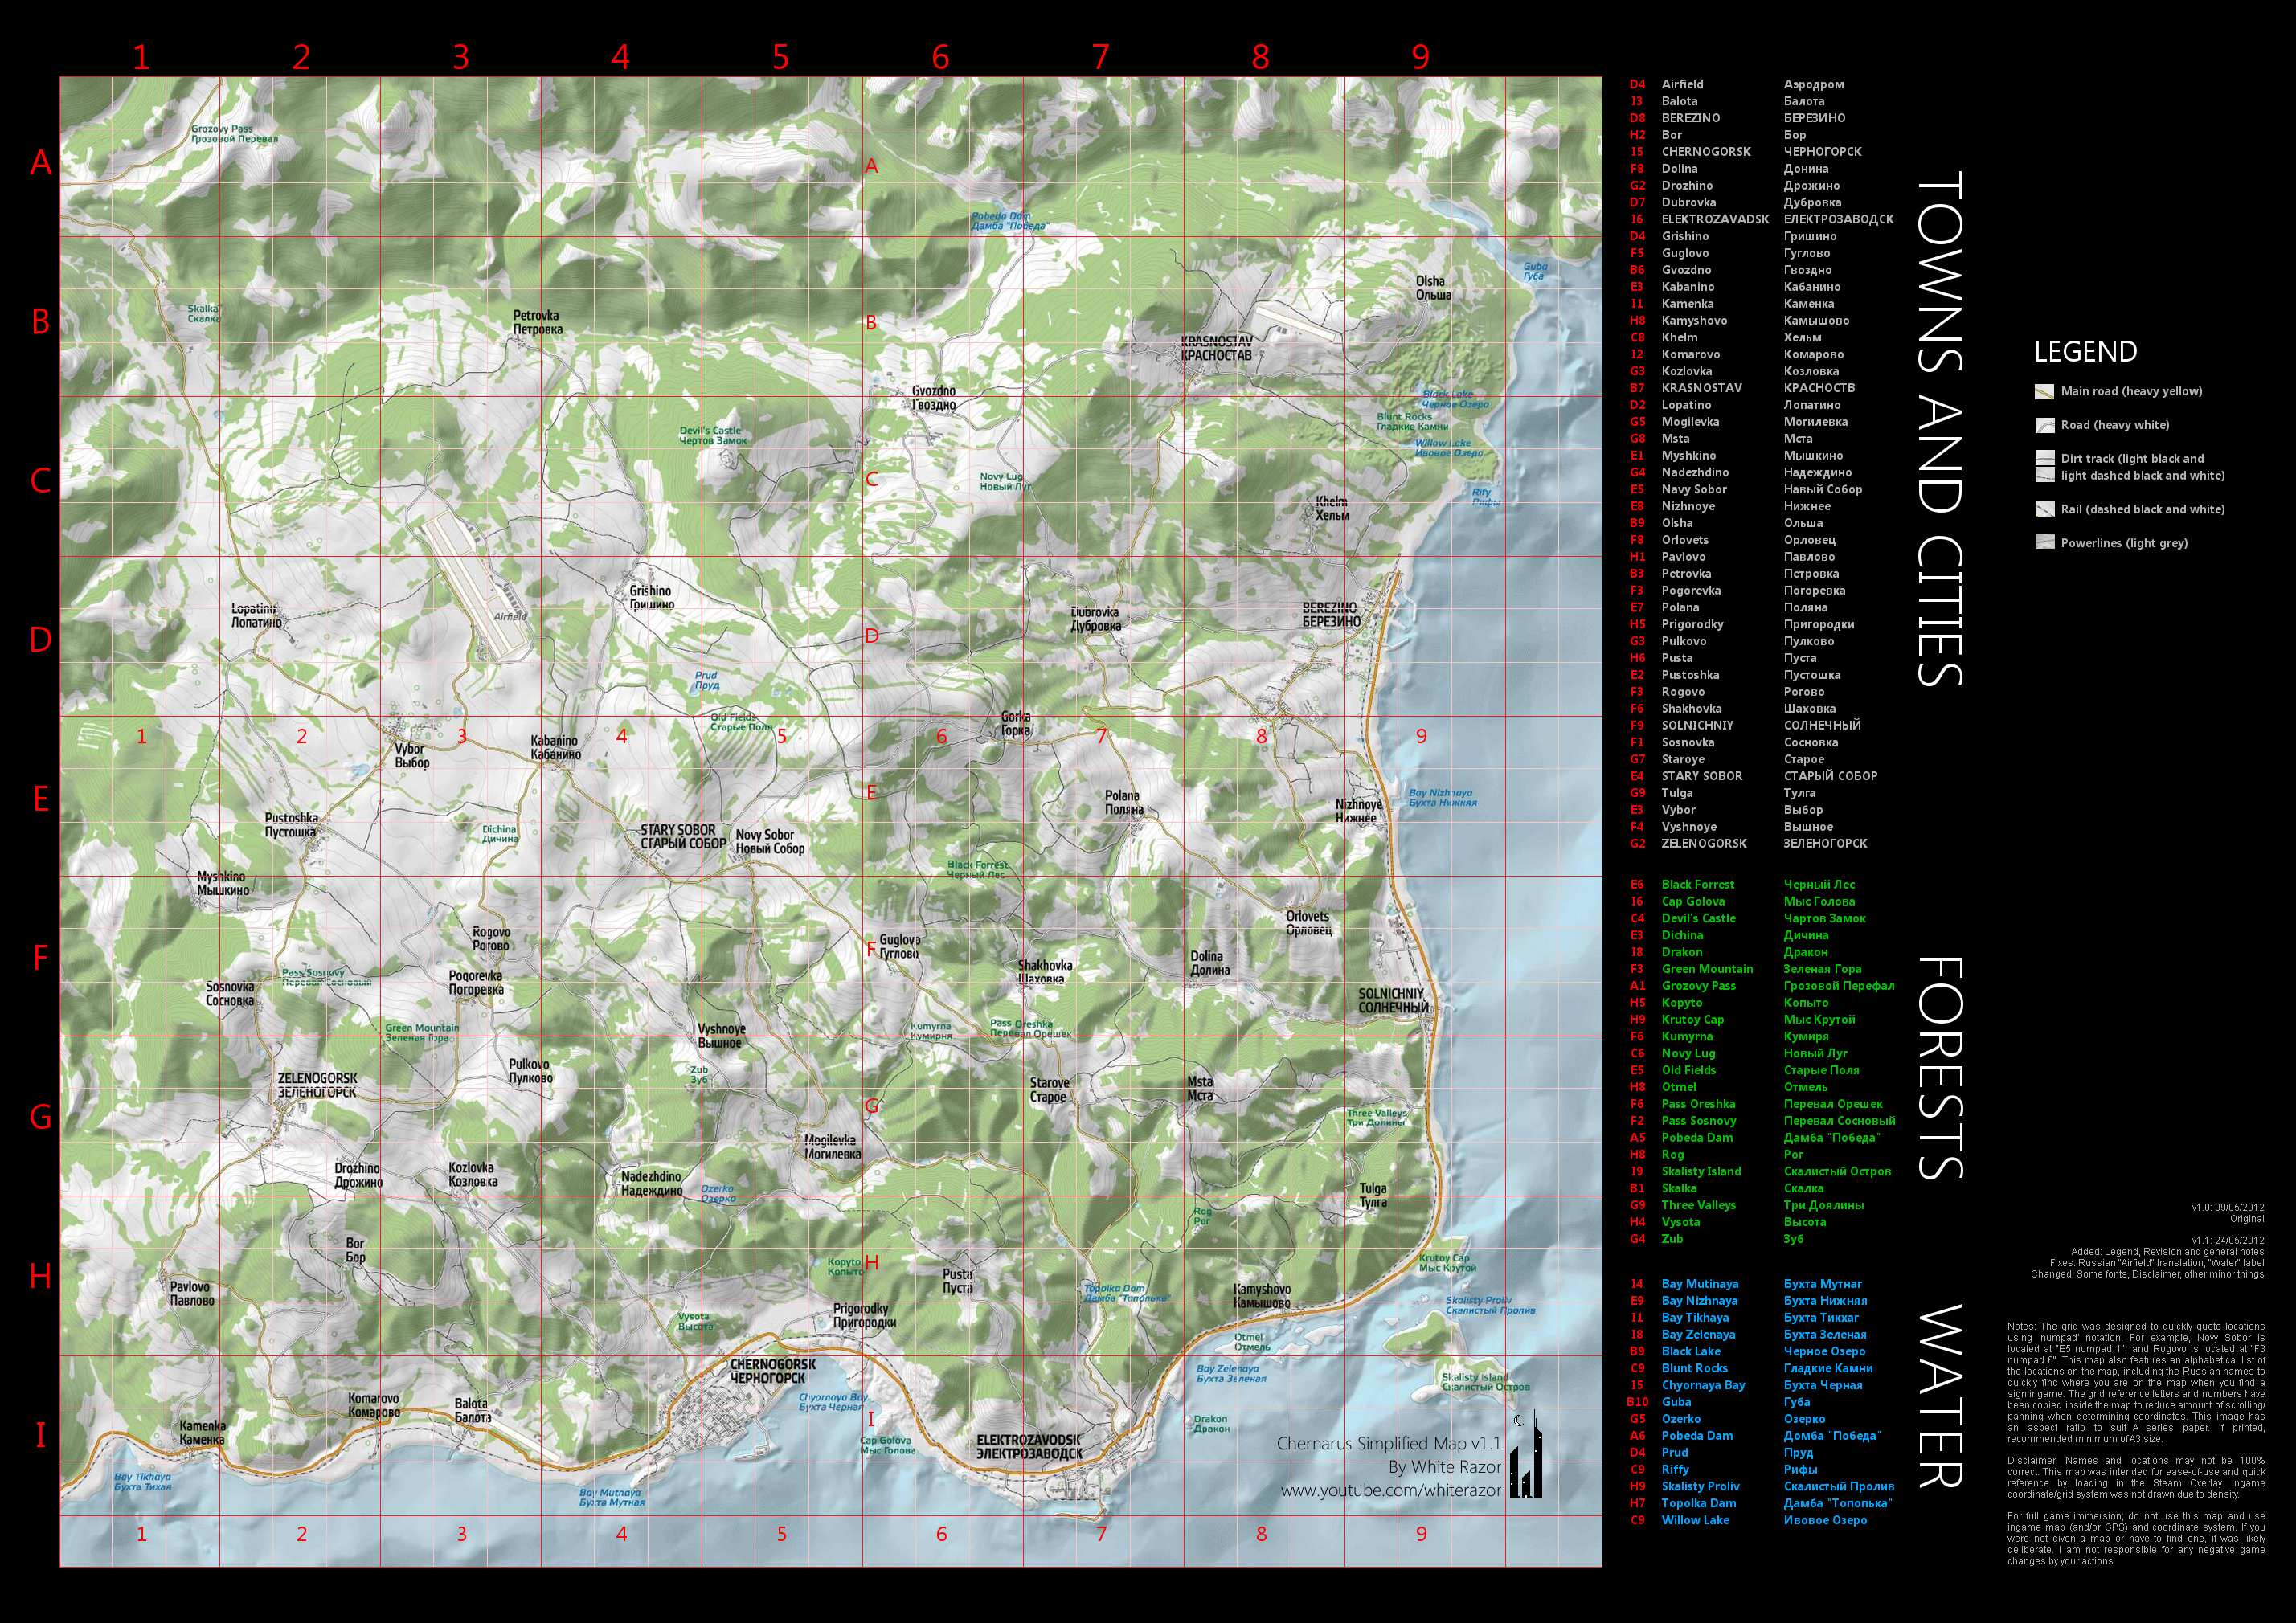 Chernarus Simplified Map (v1.1) by WhiteRAZOR